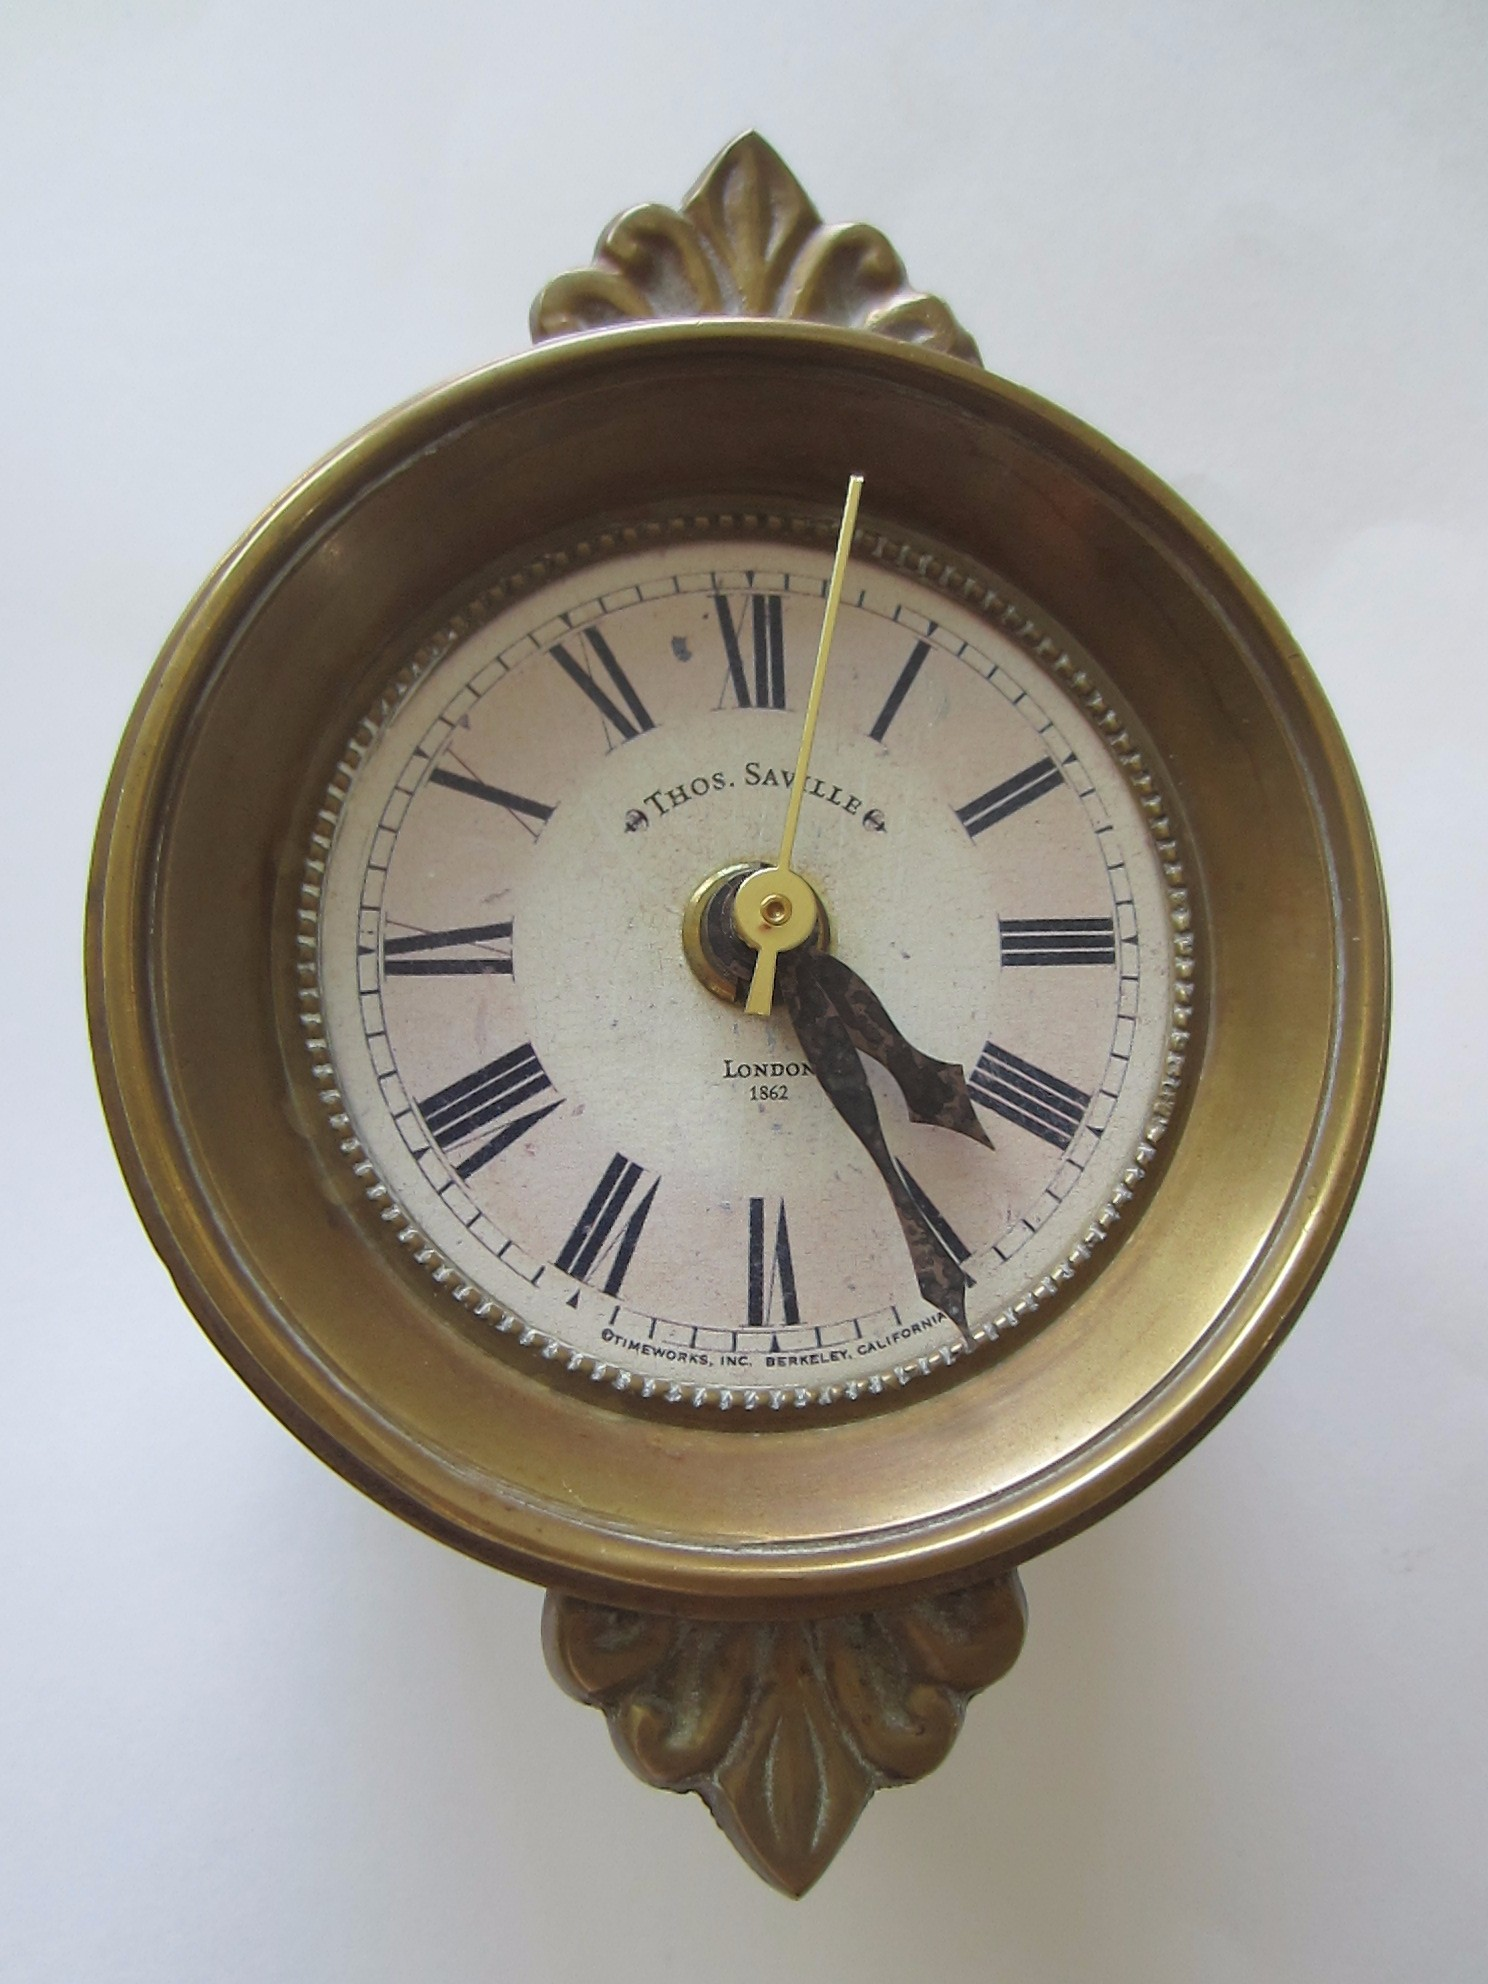 Thos Saville London Timeworks Brass Crested Wall Clock